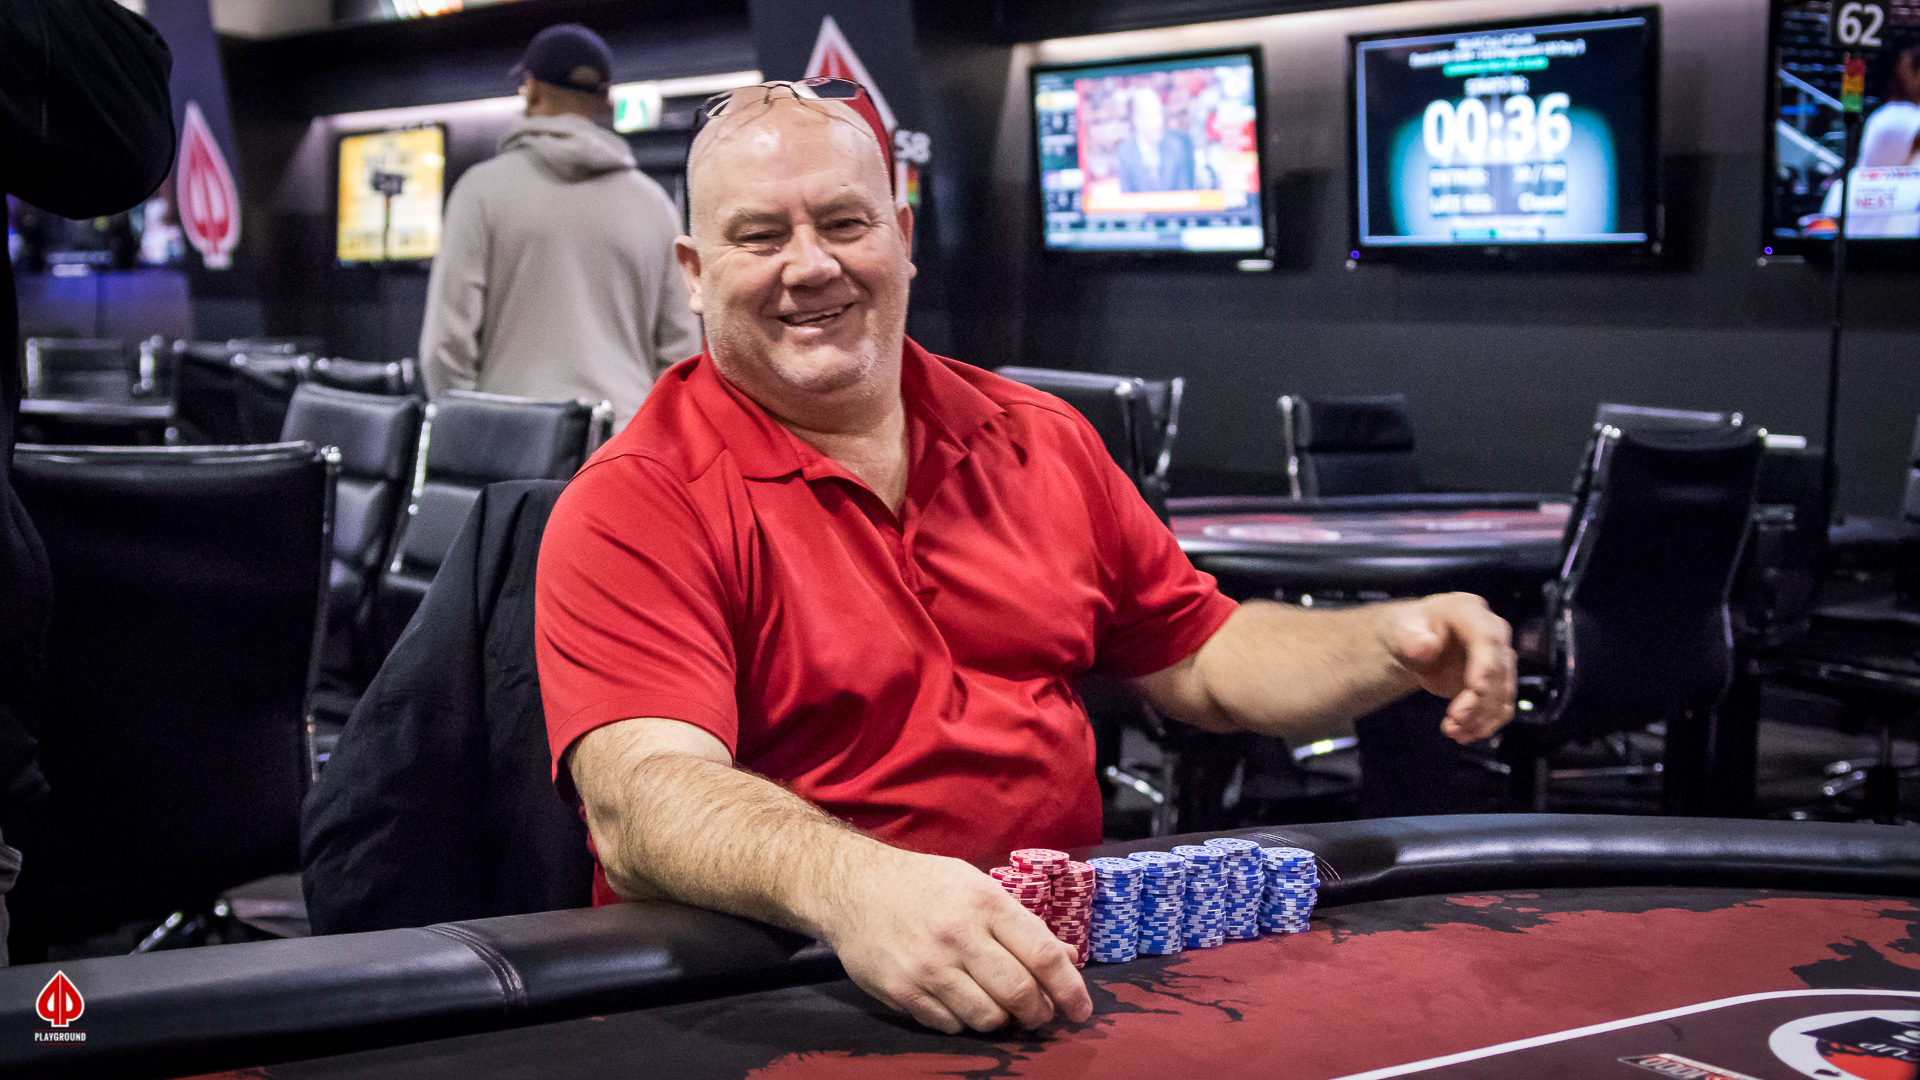 Miller goes to the rail in 4th place ($4,370)